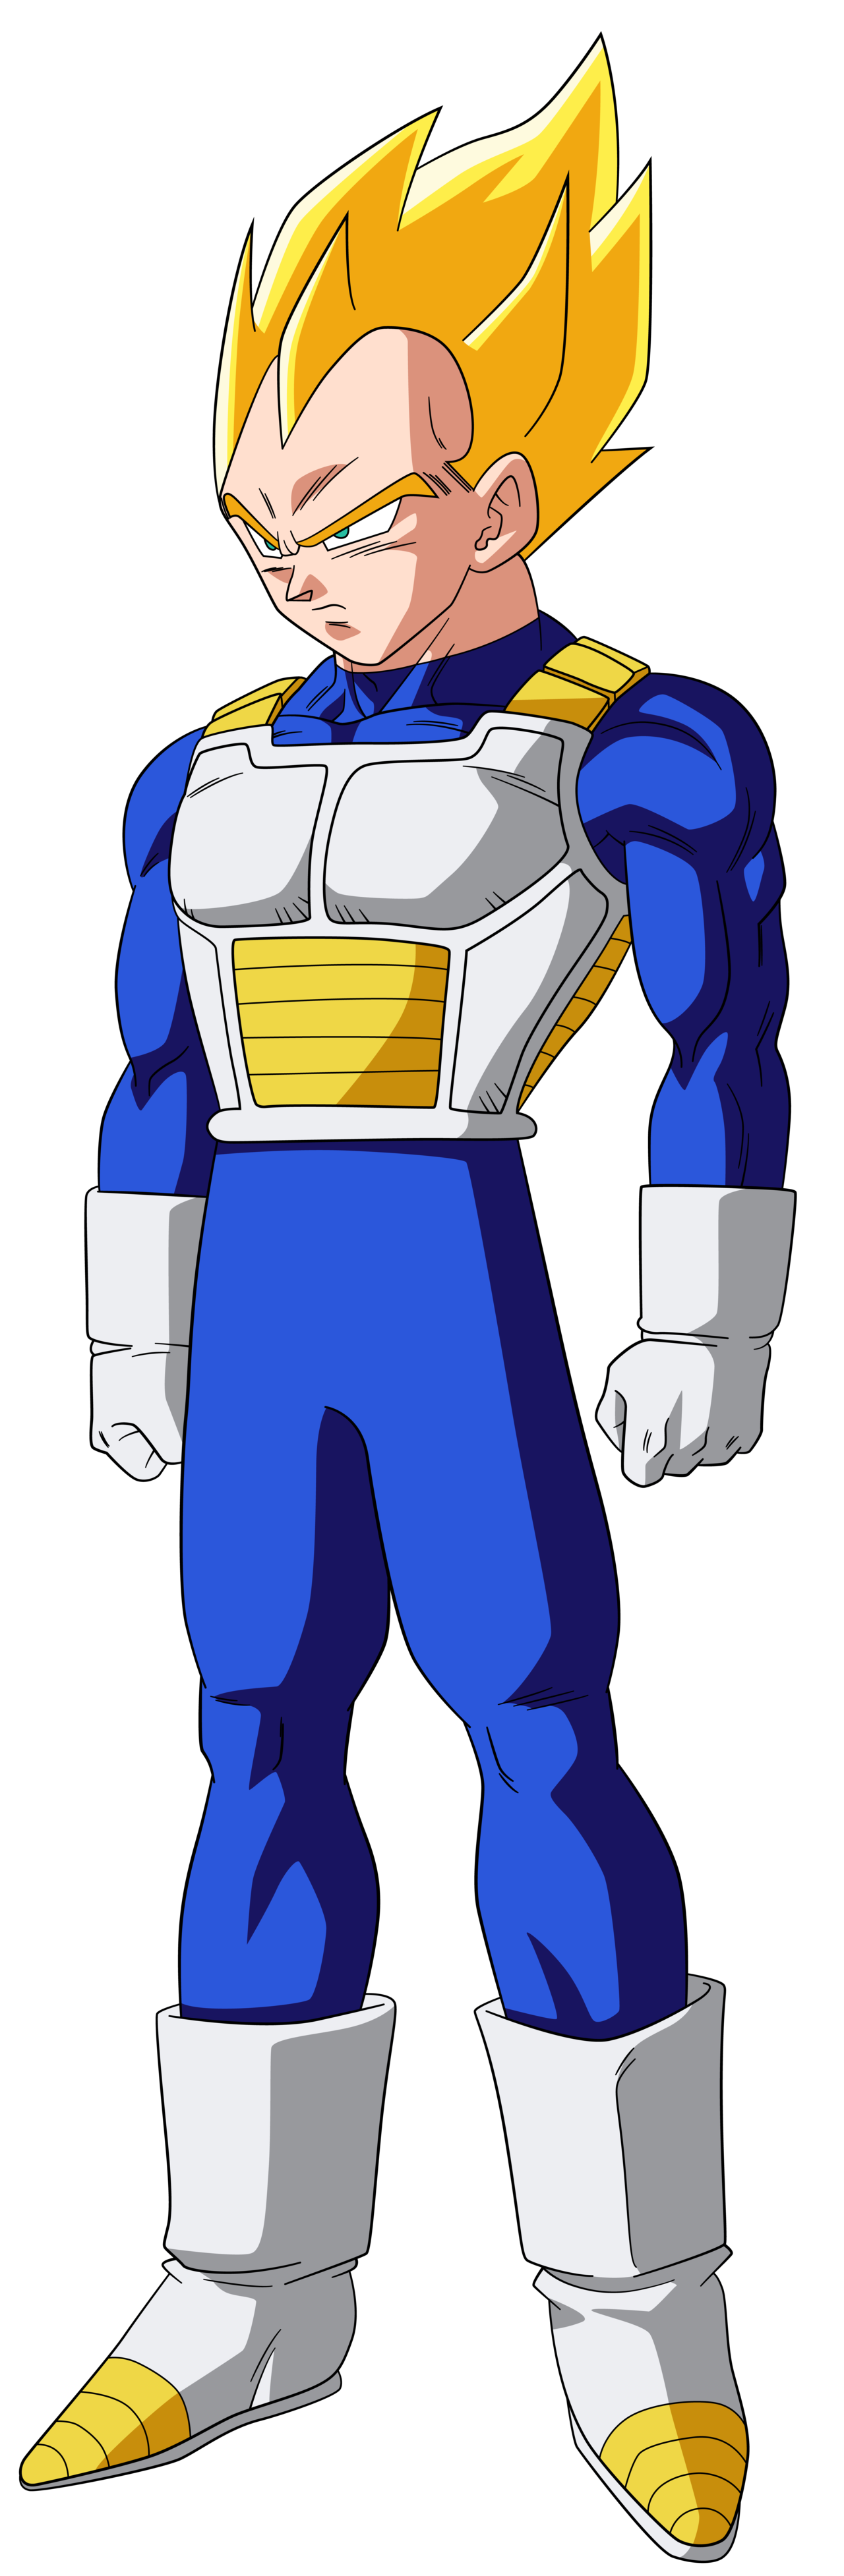 Vegeta Dragon Ball Super Wikia Fandom Powered By Wikia